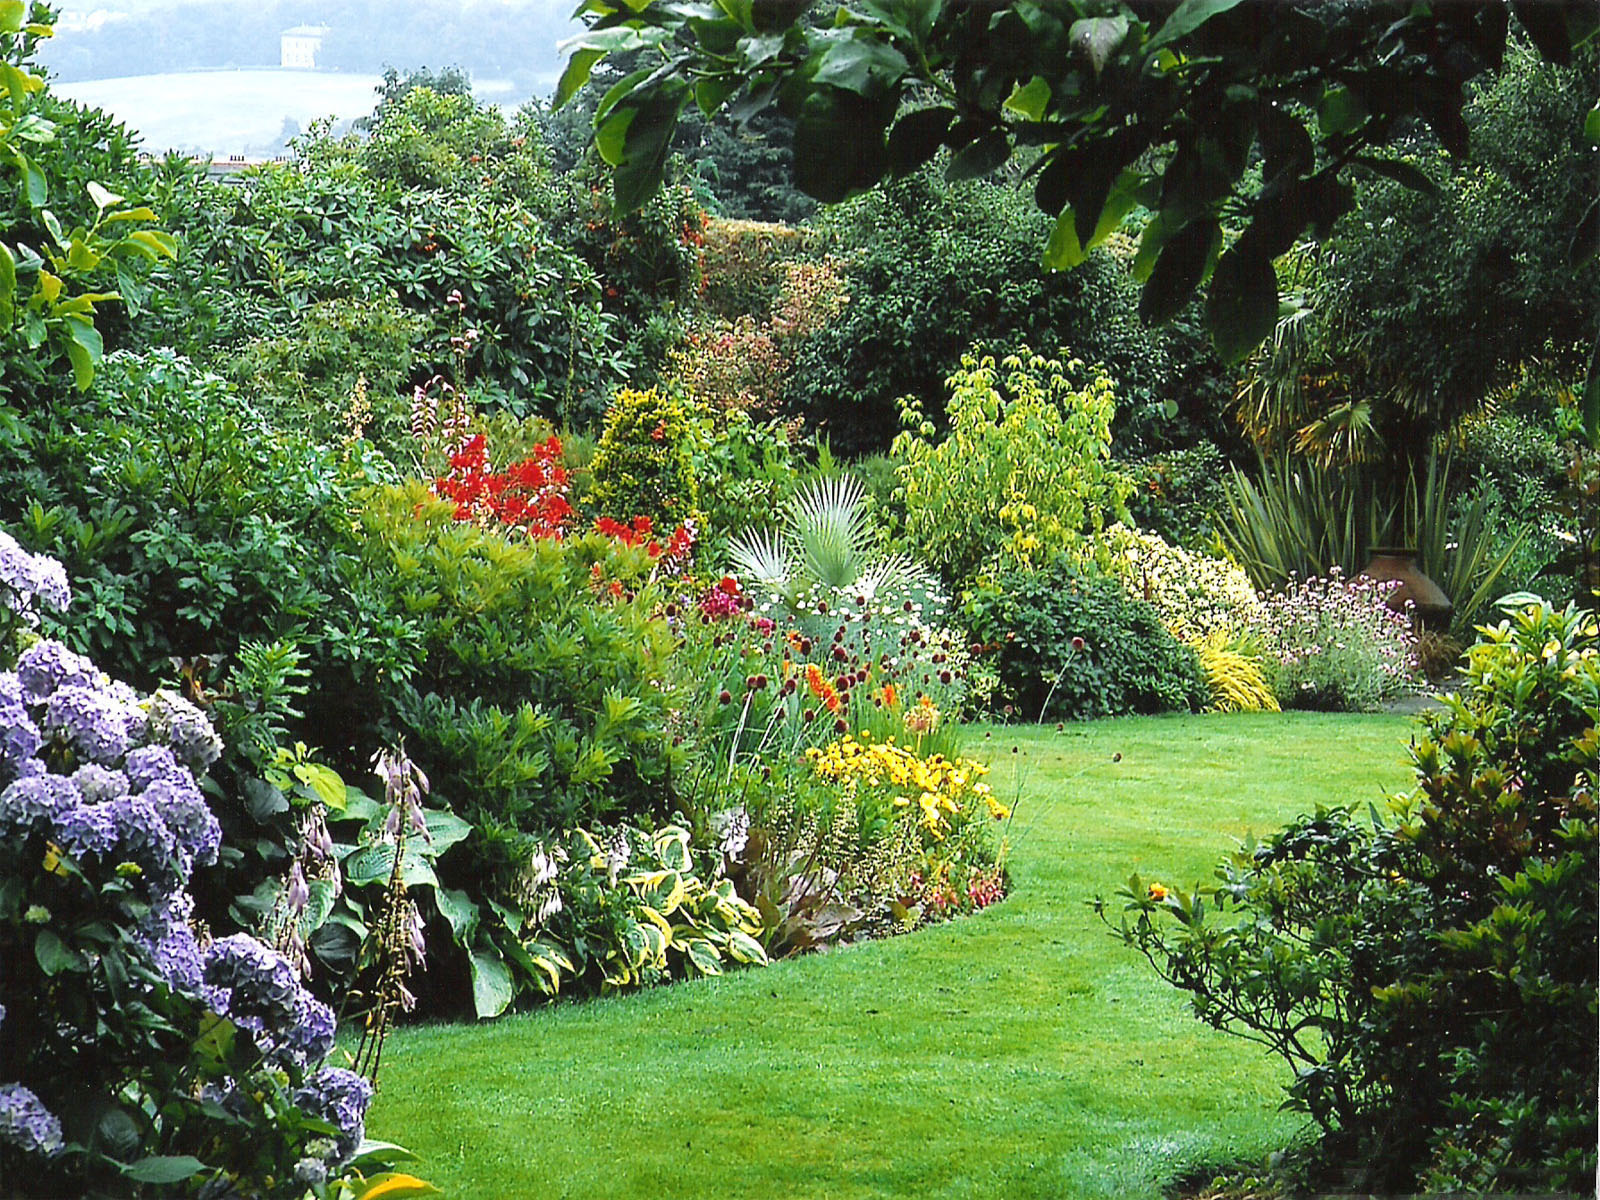 garden landscape picturesflower garden picturefree flower images 1600x1200